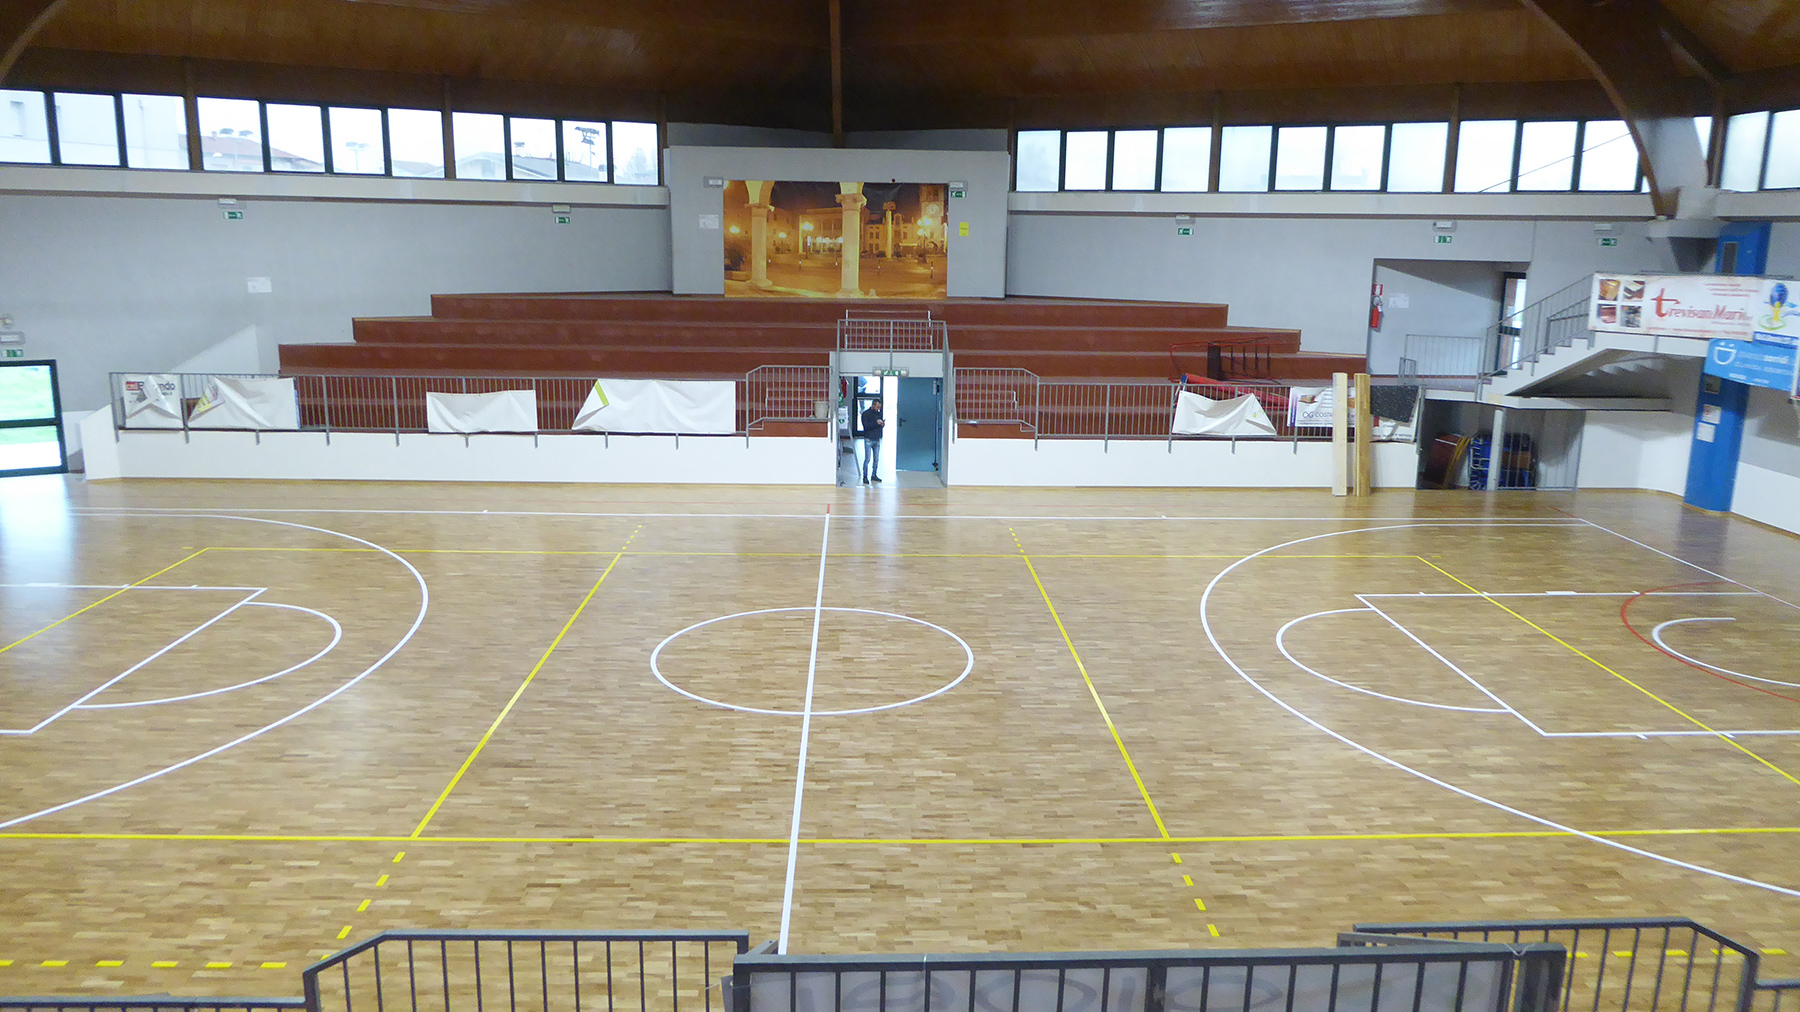 Another important gym by Dalla Riva